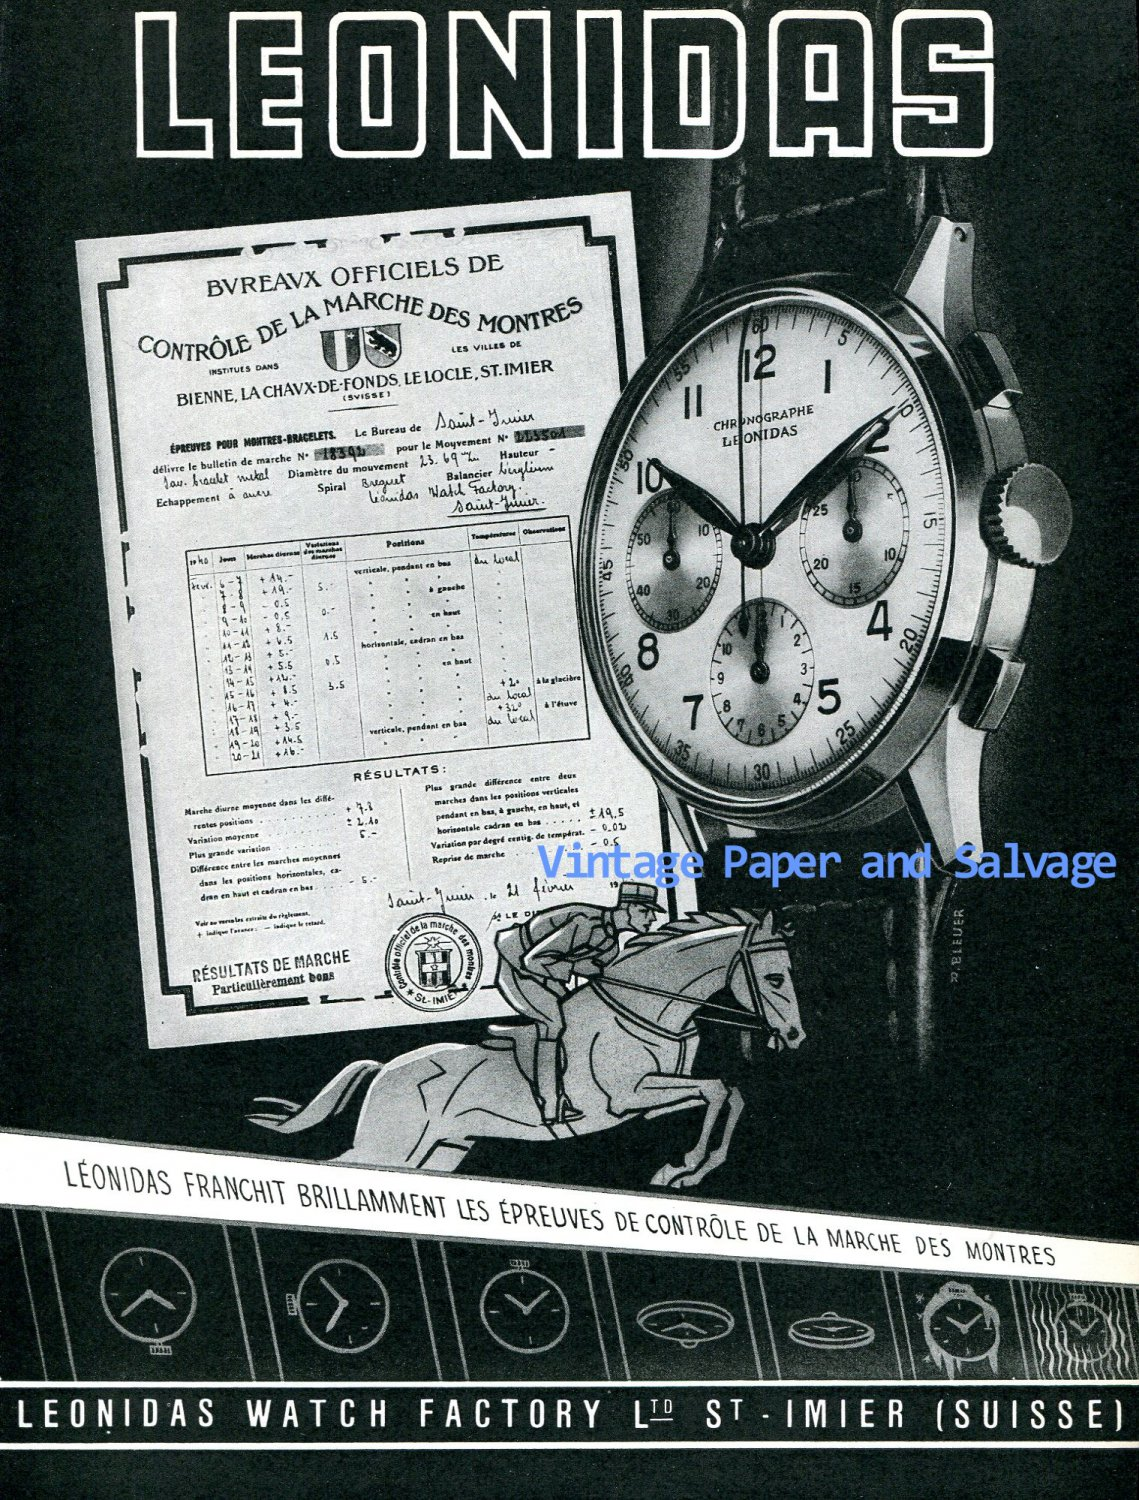 Vintage 1945 Leonidas Watch Company Switzerland 1940s Swiss Ad Advert Publicite Suisse